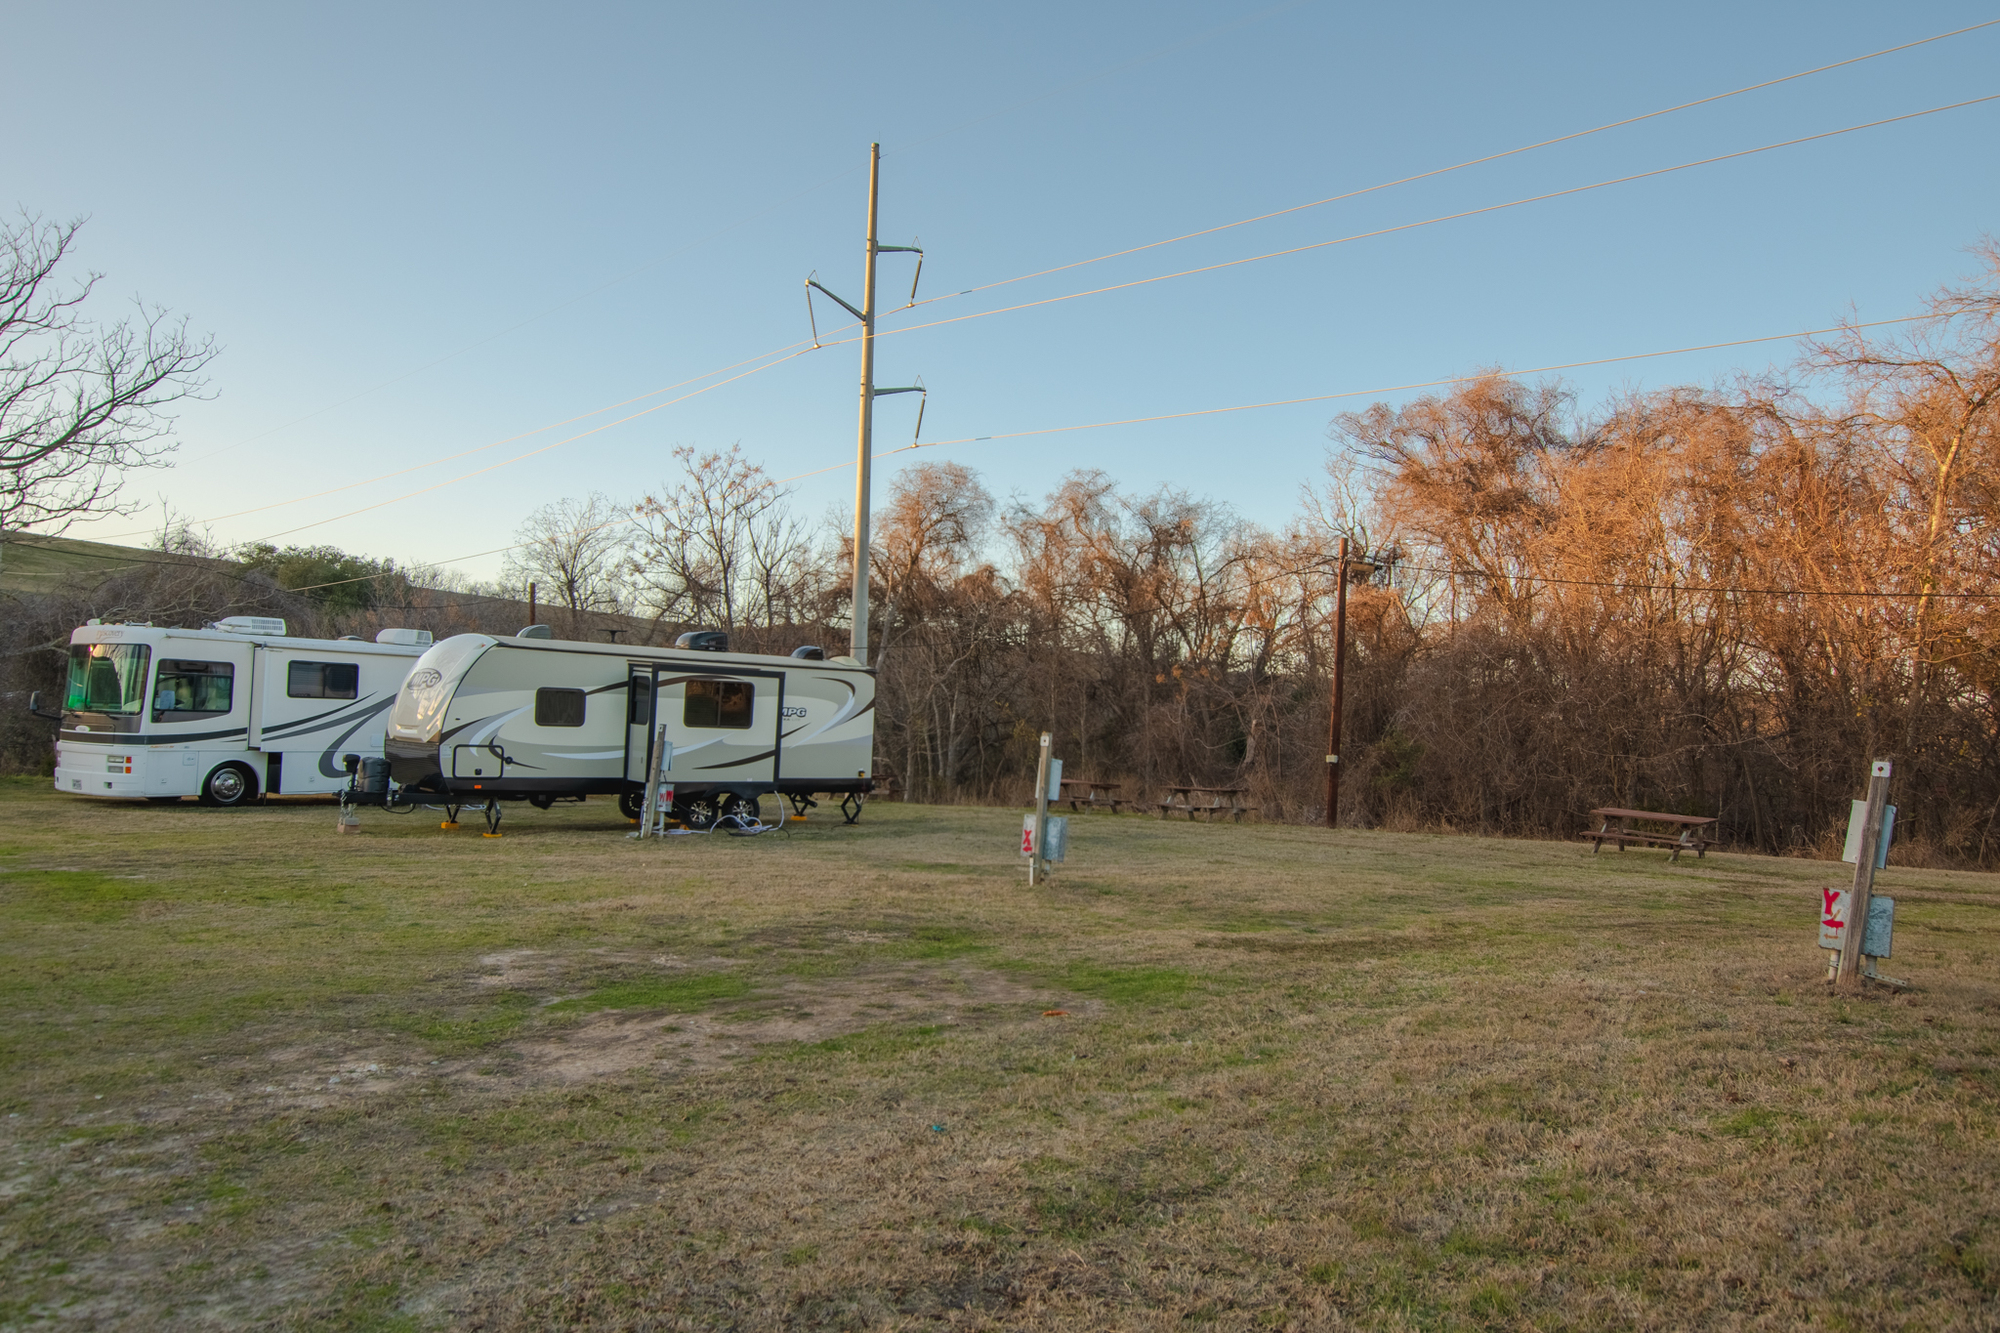 Image for Y) Third Row Back in Rv Site (no sewer)